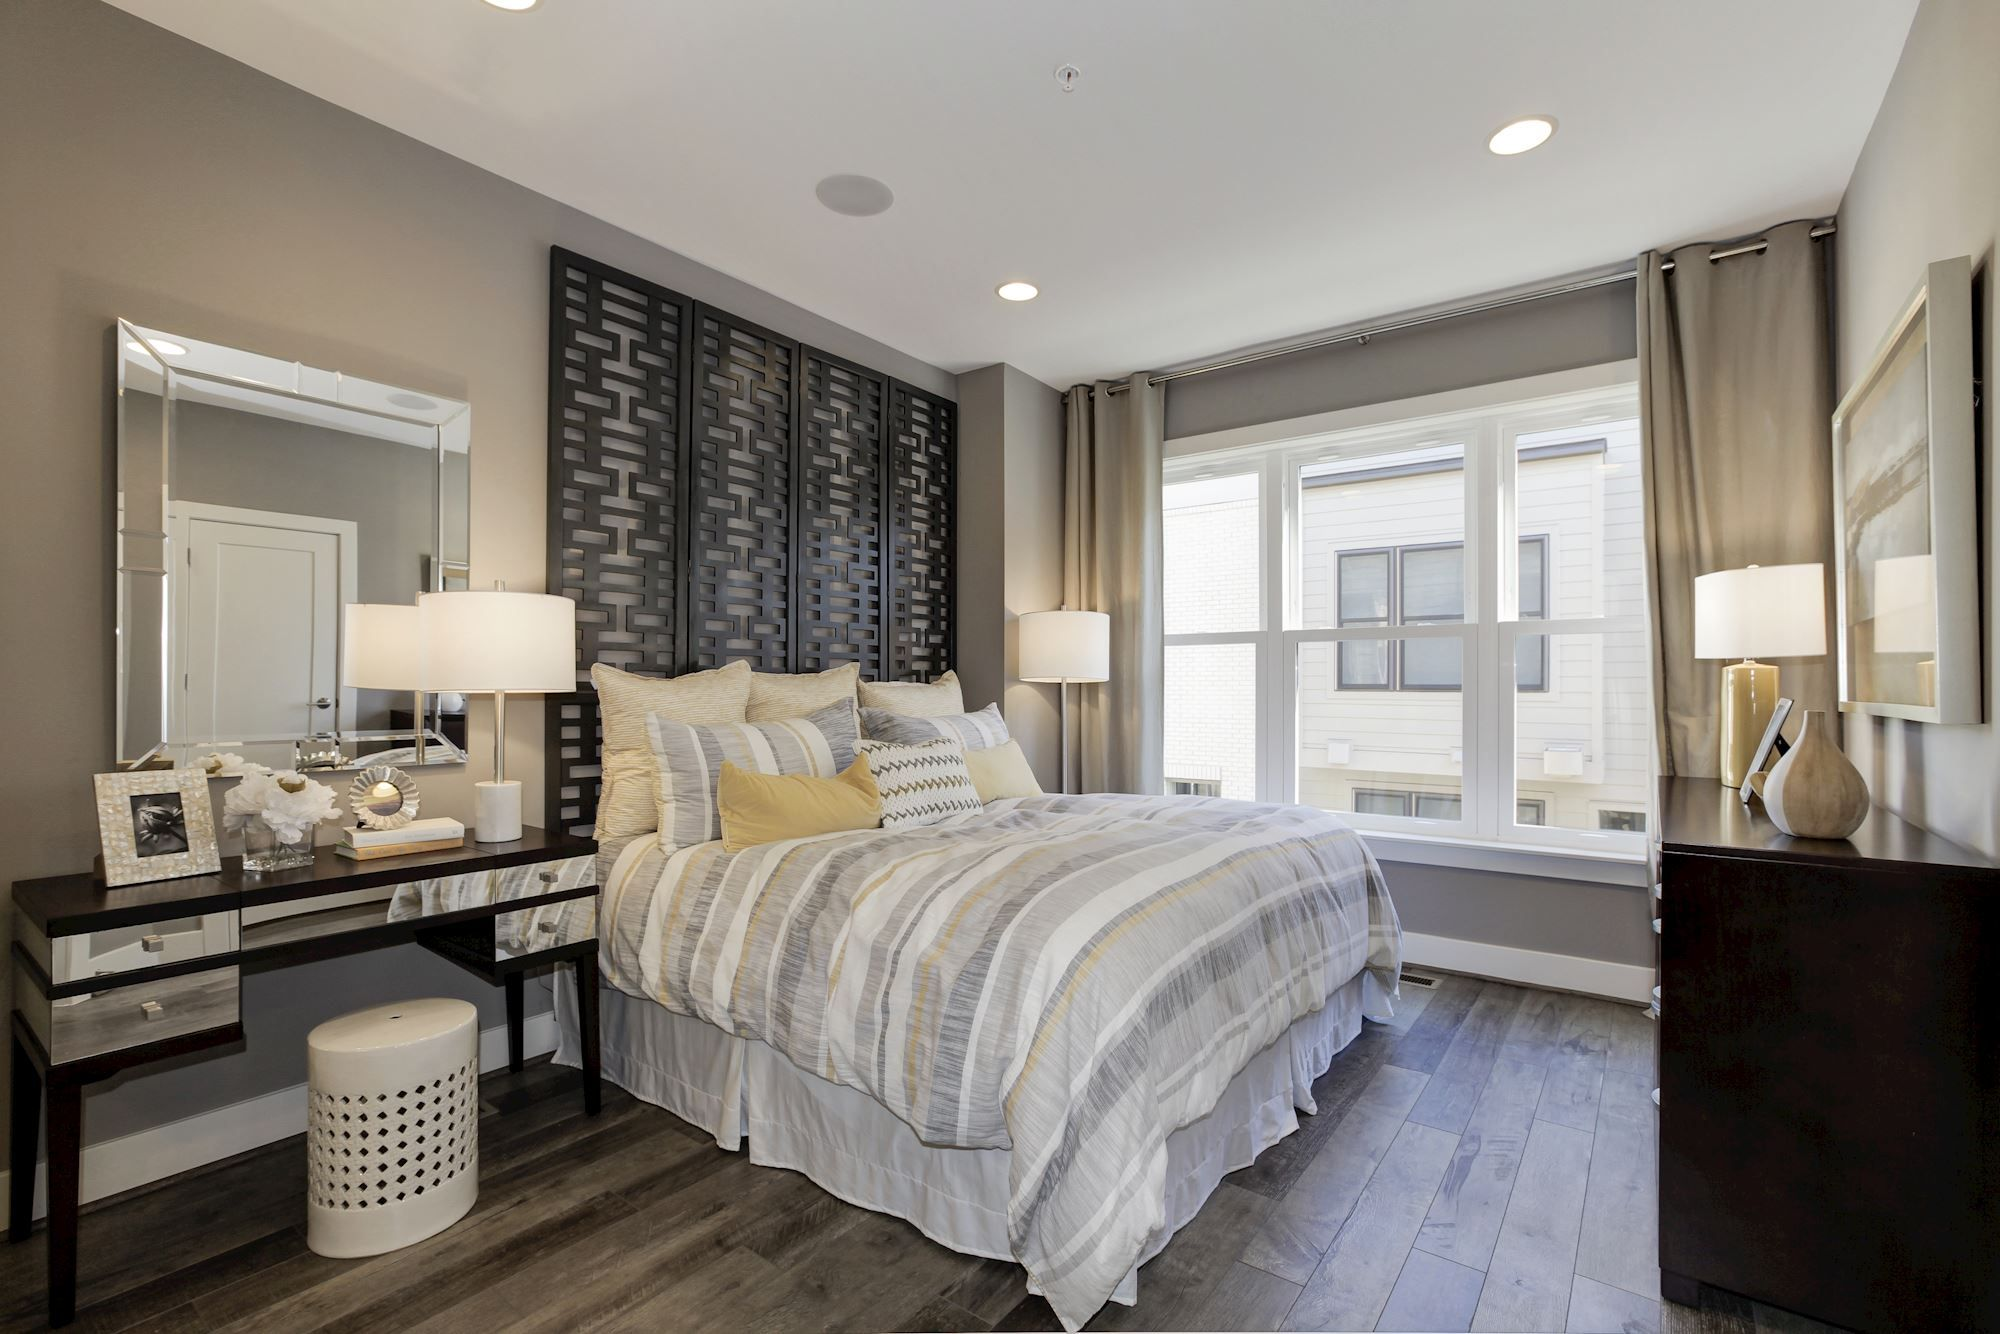 Contemporary Master Bedroom With Gray And Black Color Scheme With